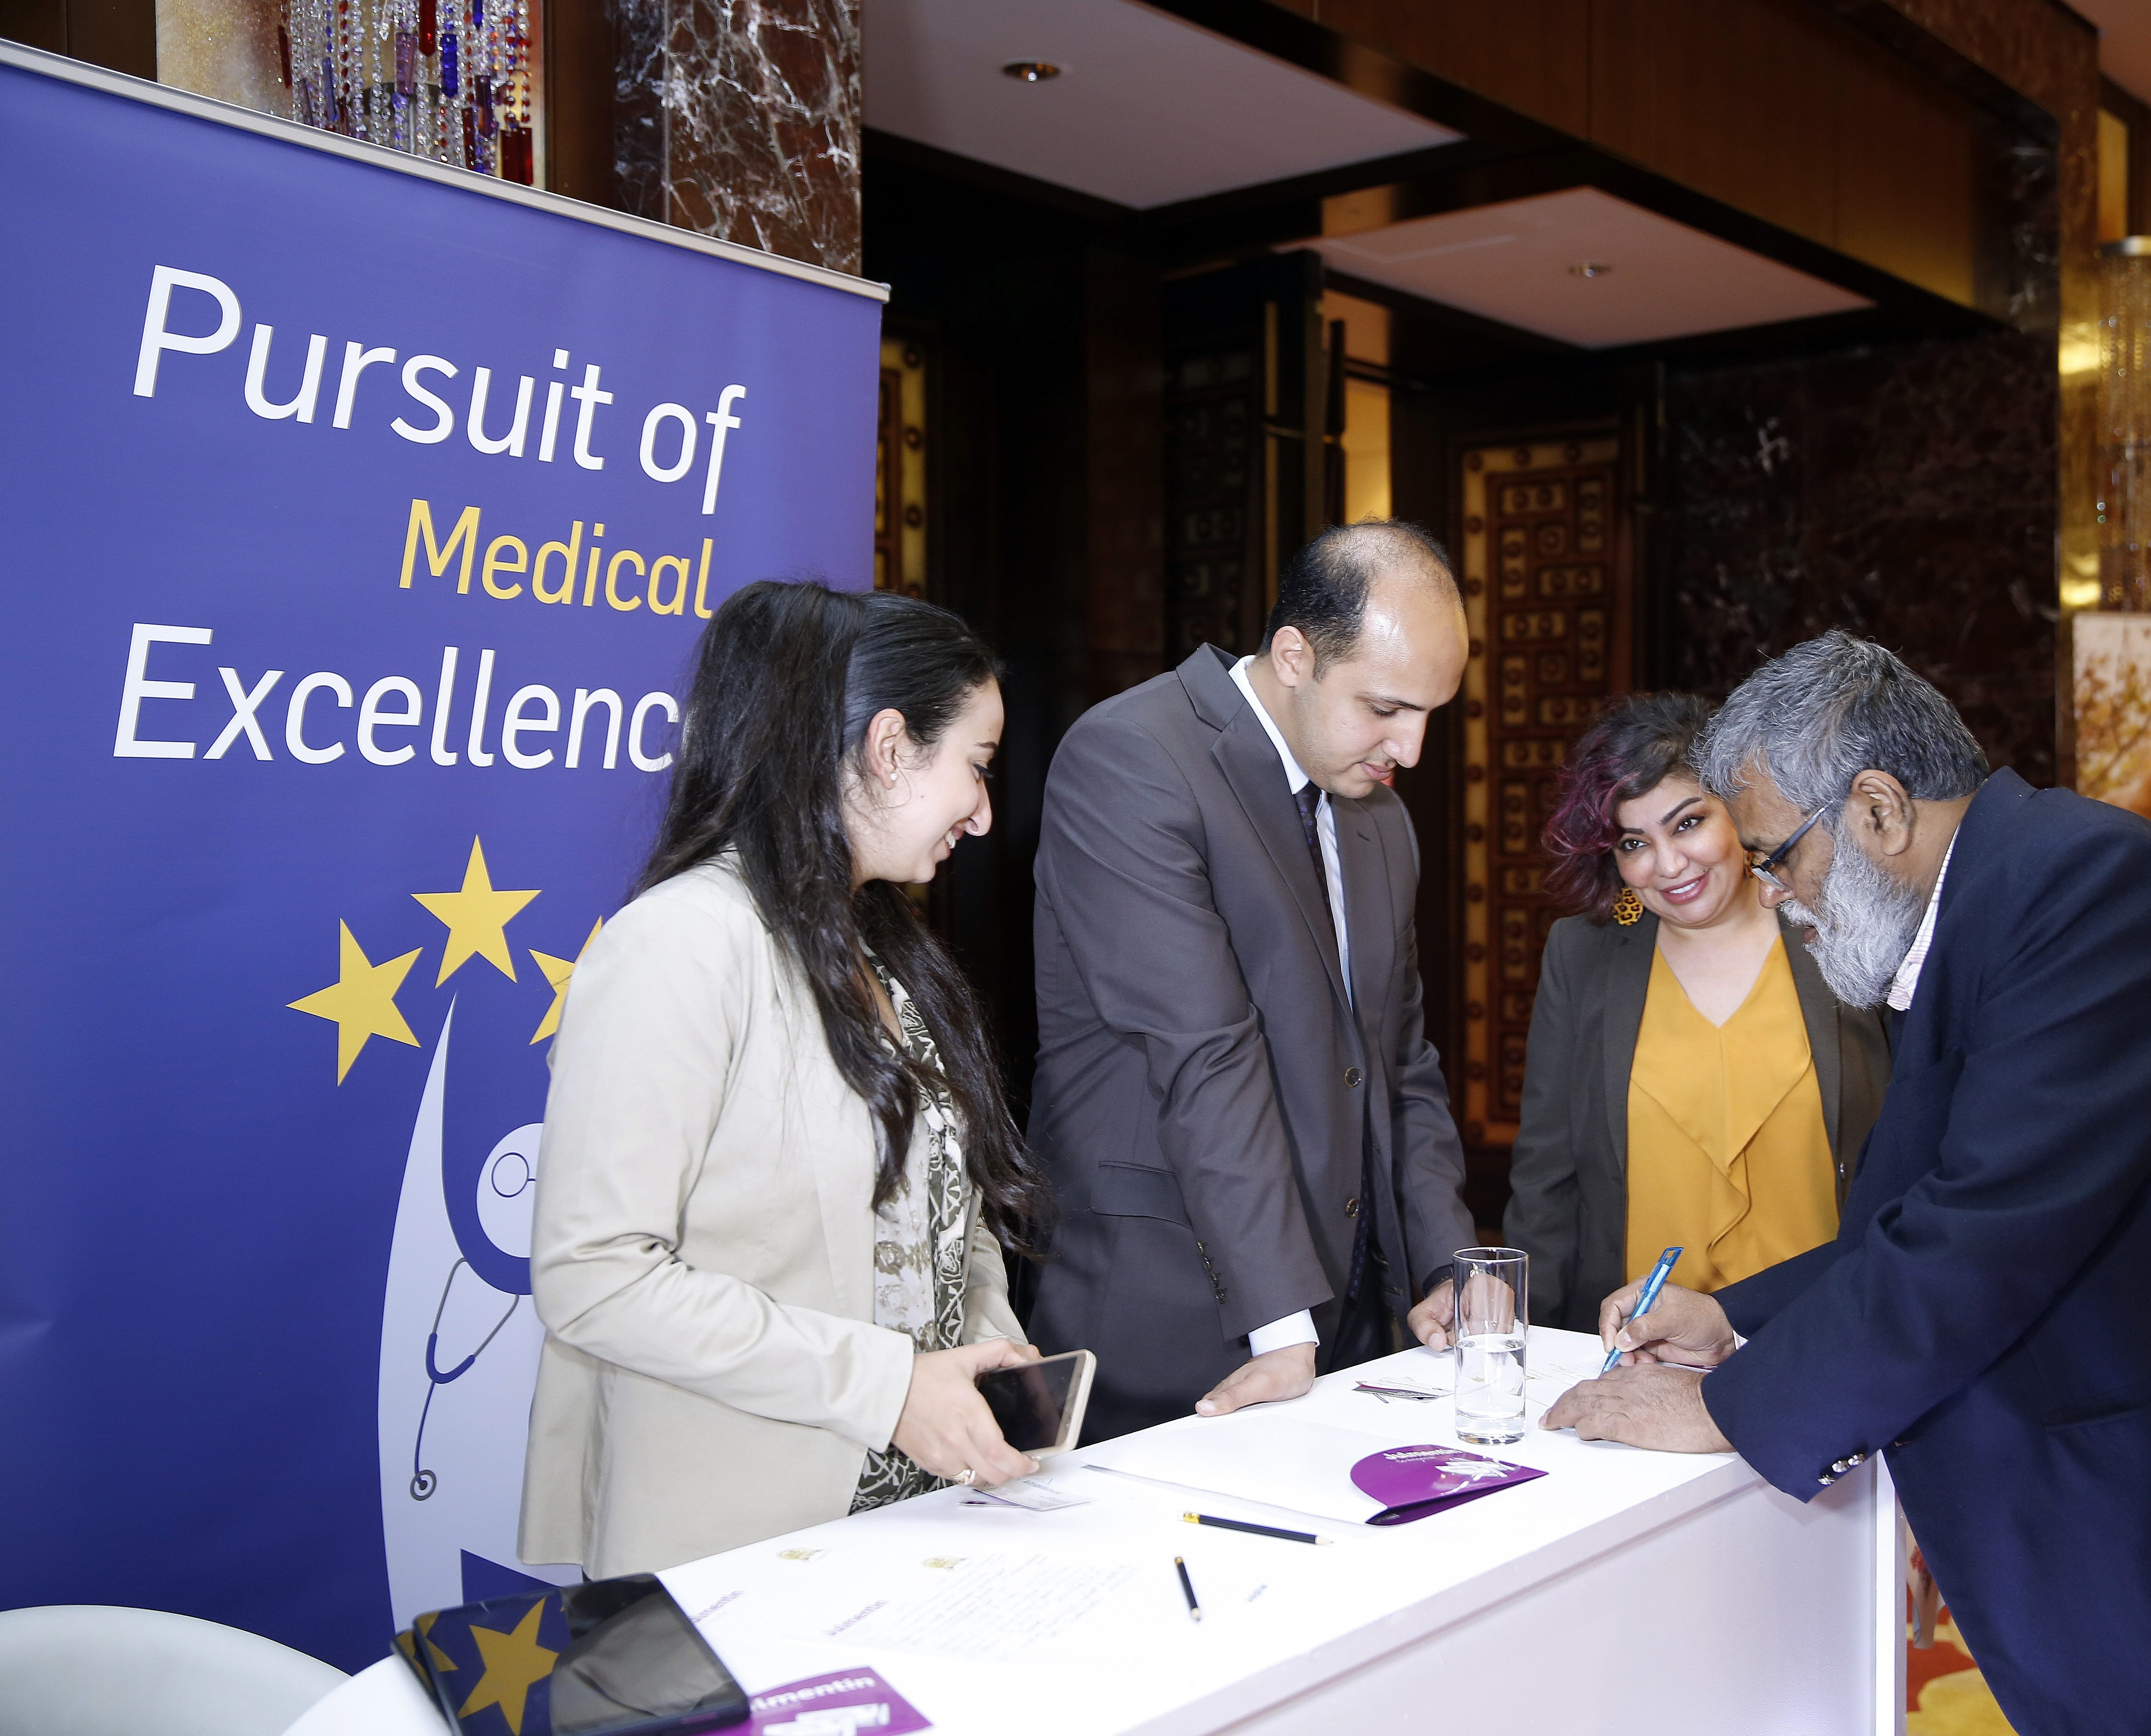 Julphar launches Pursuit of Medical Excellence program in UAE